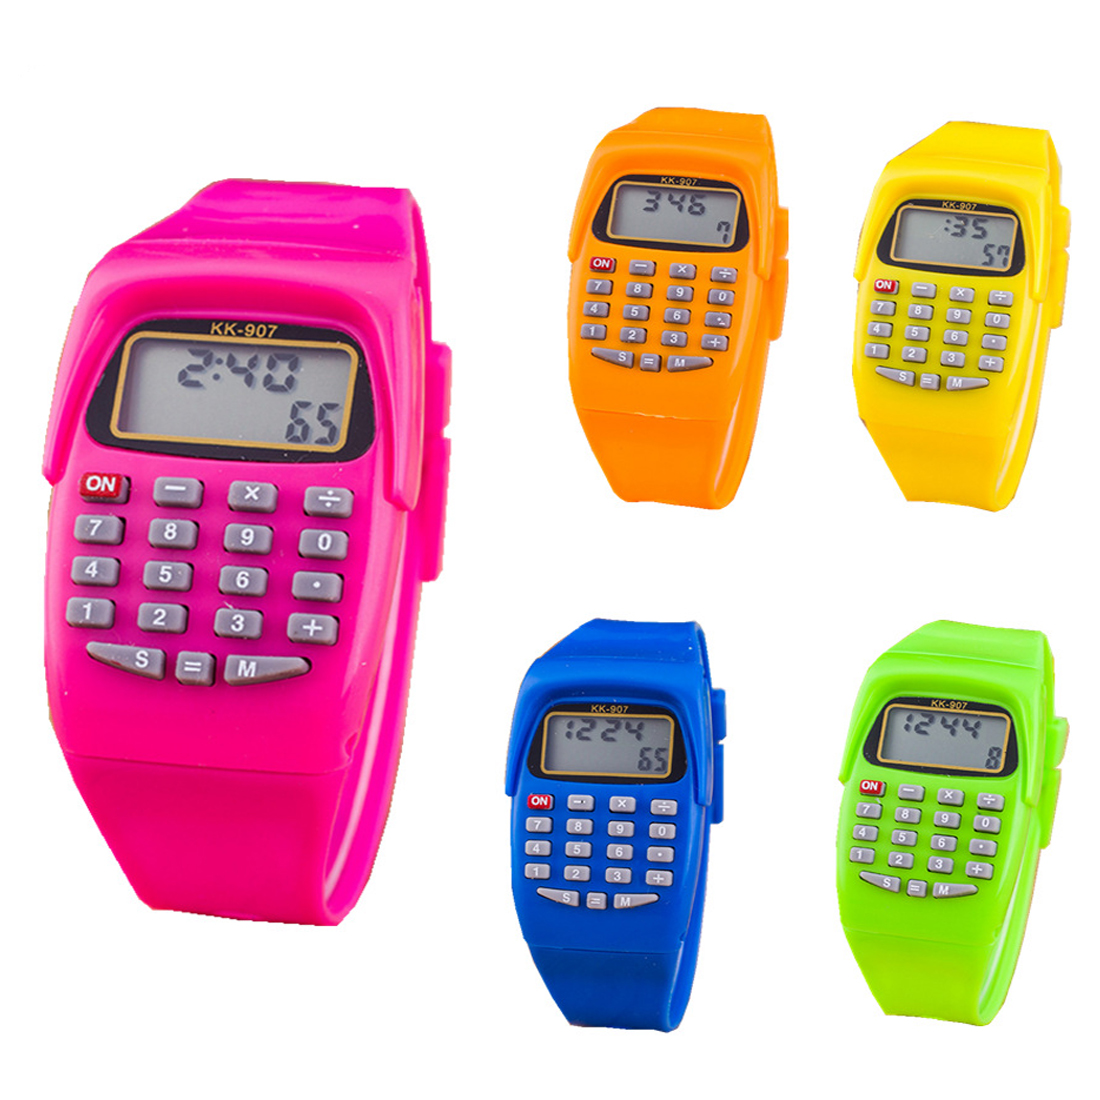 Uncategorized Kids Calculator popular kids calculator watches buy cheap fashion digital with led watch function casual silicone sports for children multifunction calculating